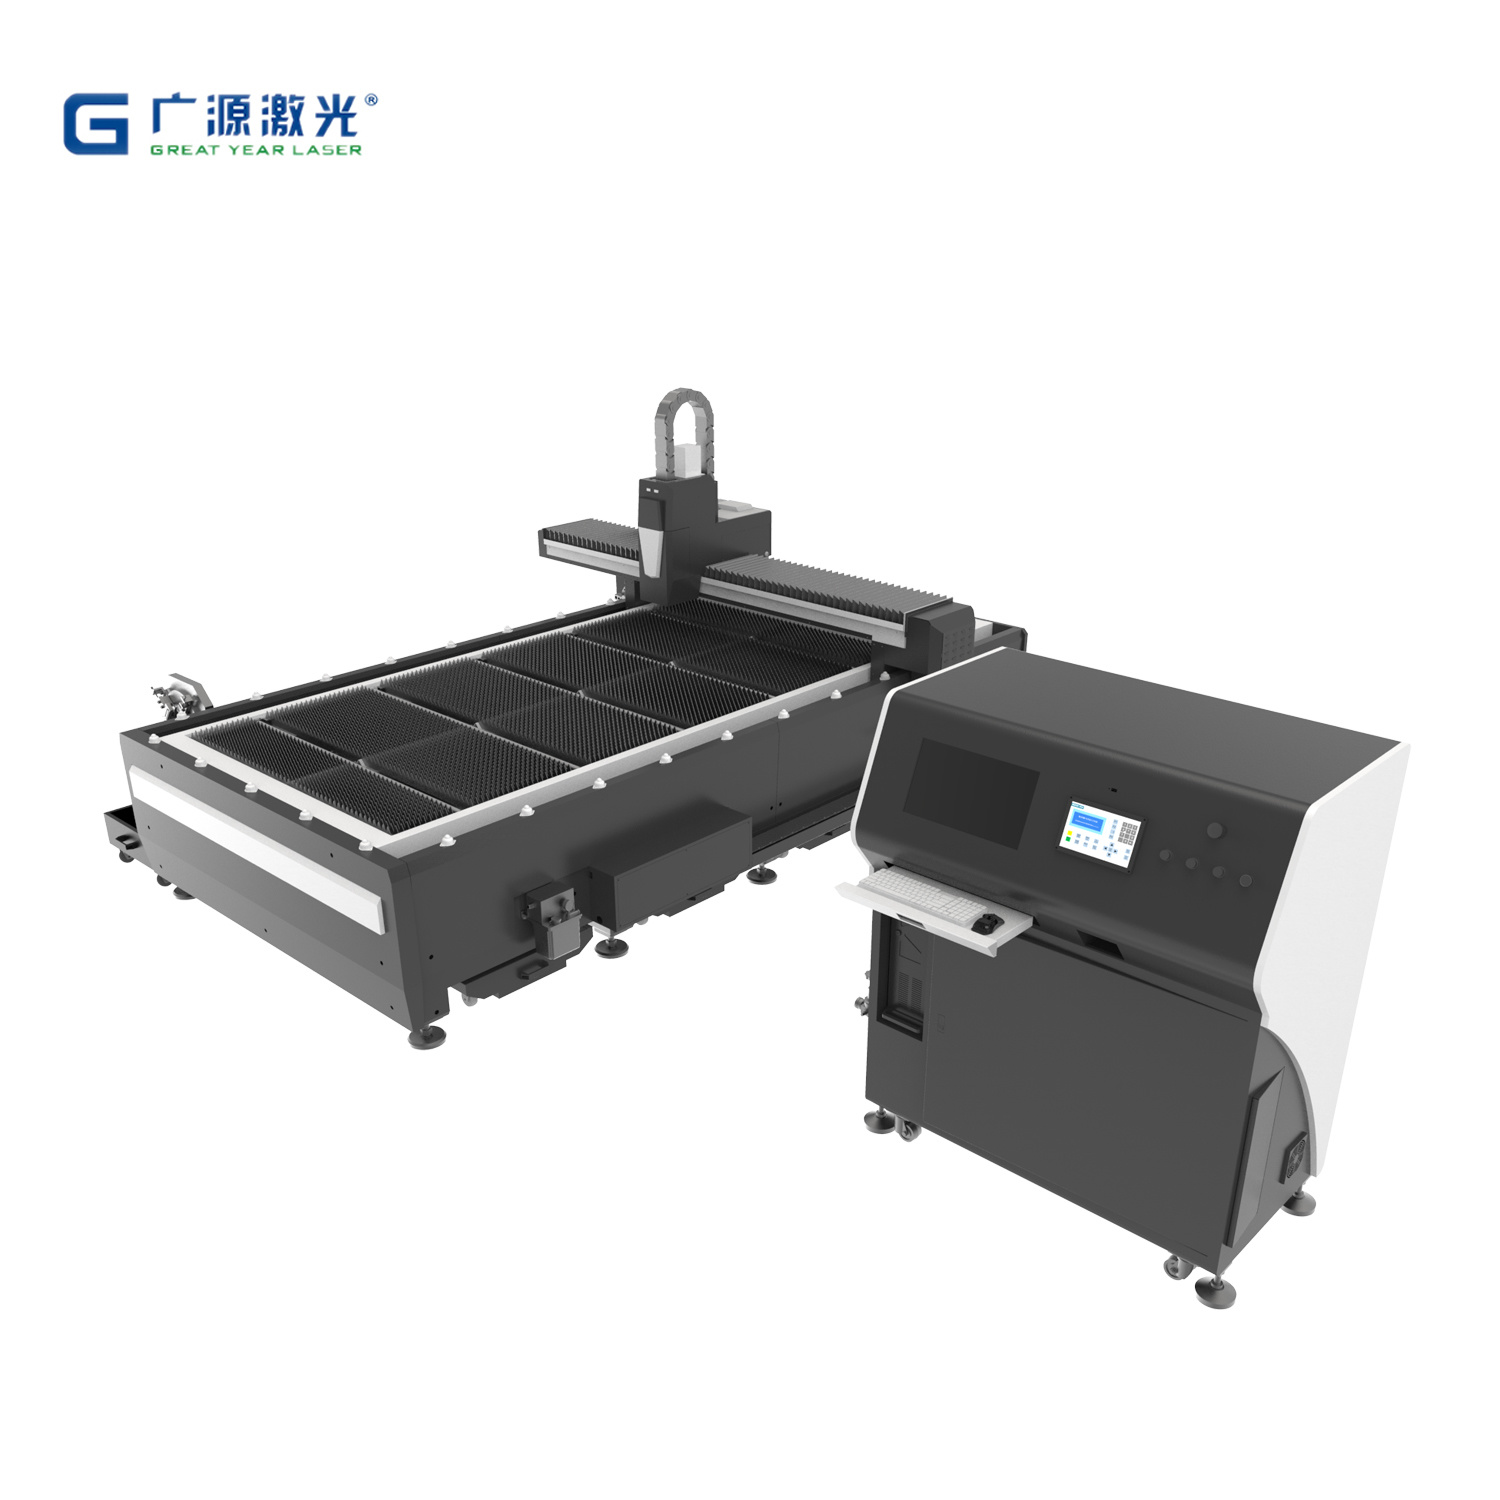 Stainless Steel Pipe Cutting/Engraving Machine